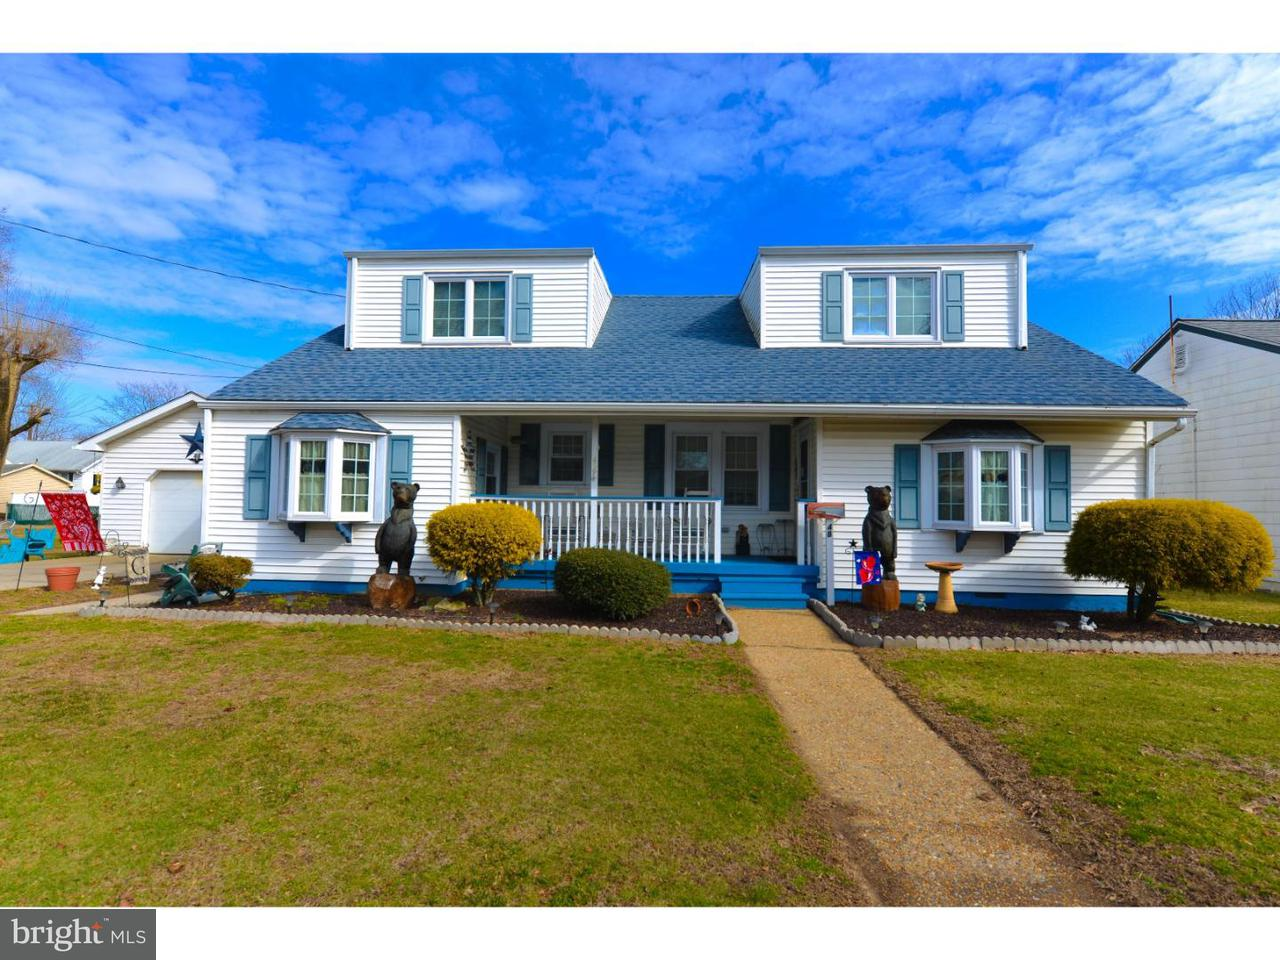 Single Family Home for Rent at 48 SPRUCE Street Pennsville, New Jersey 08070 United States